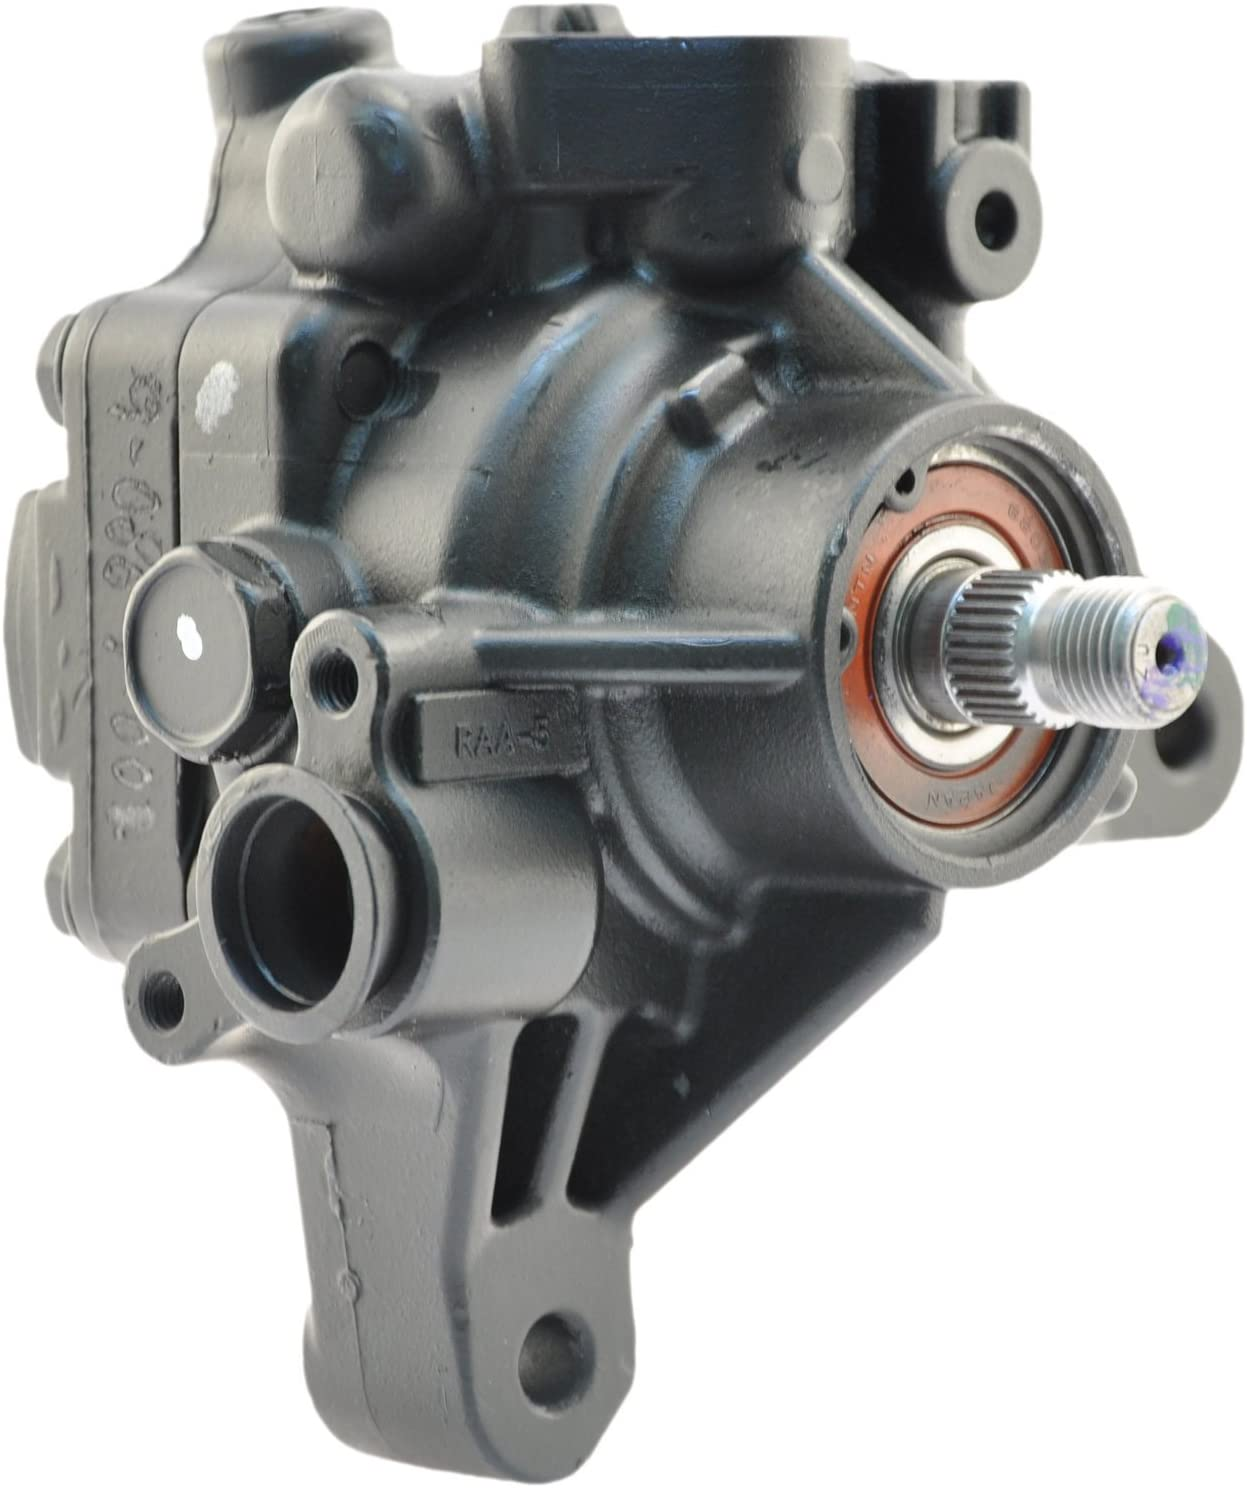 Remanufactured ACDelco 36P0855 Professional Power Steering Pump